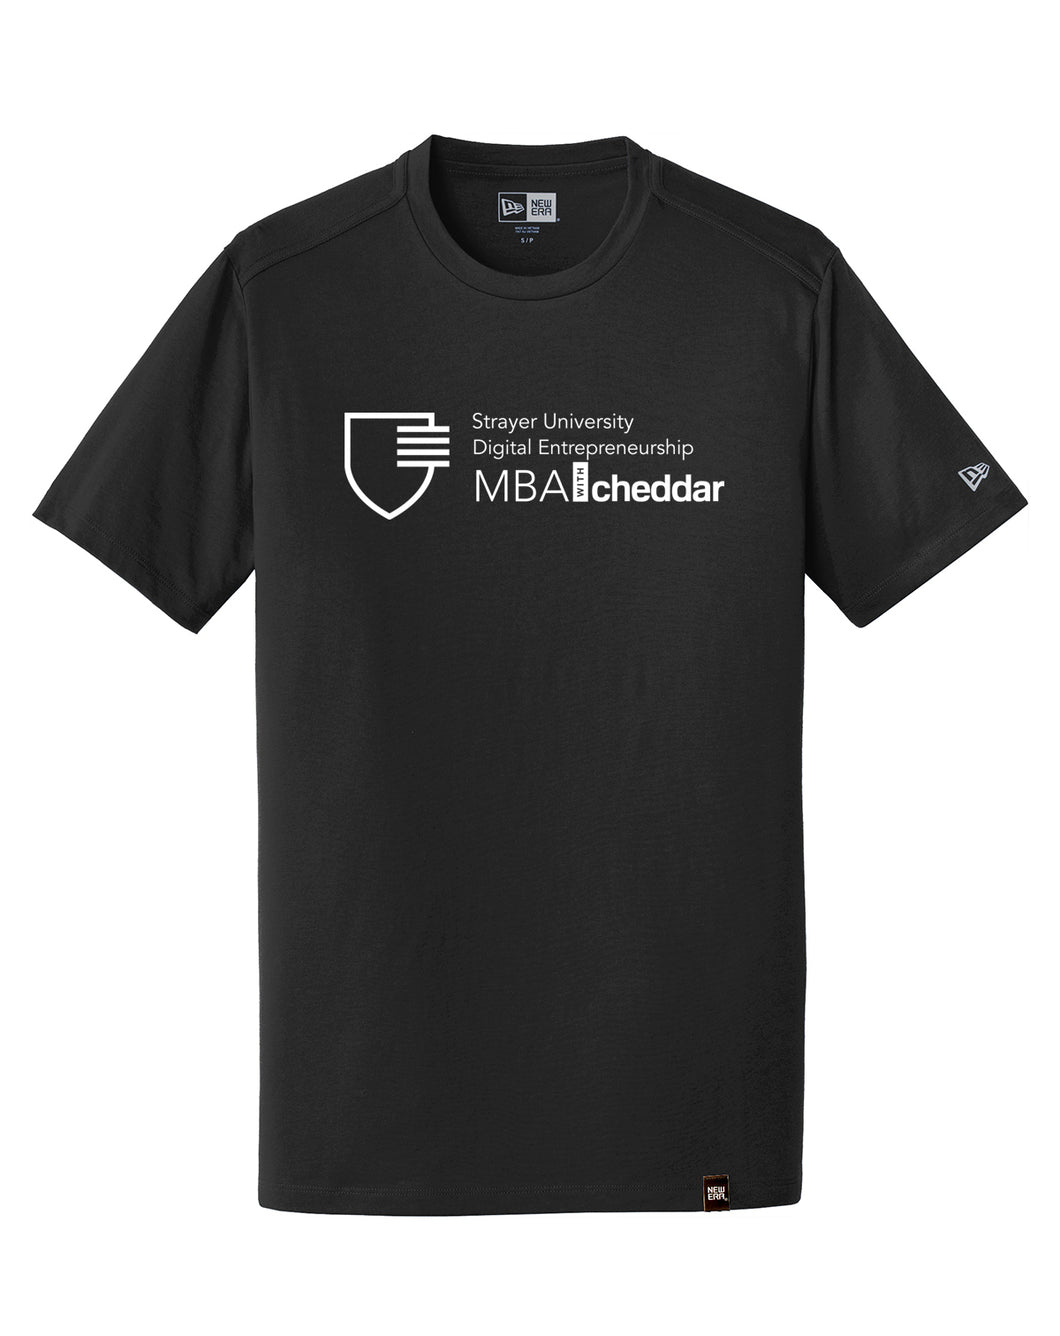 MBA CHEDDAR - New Era Heritage Blend Crew Tee - Black